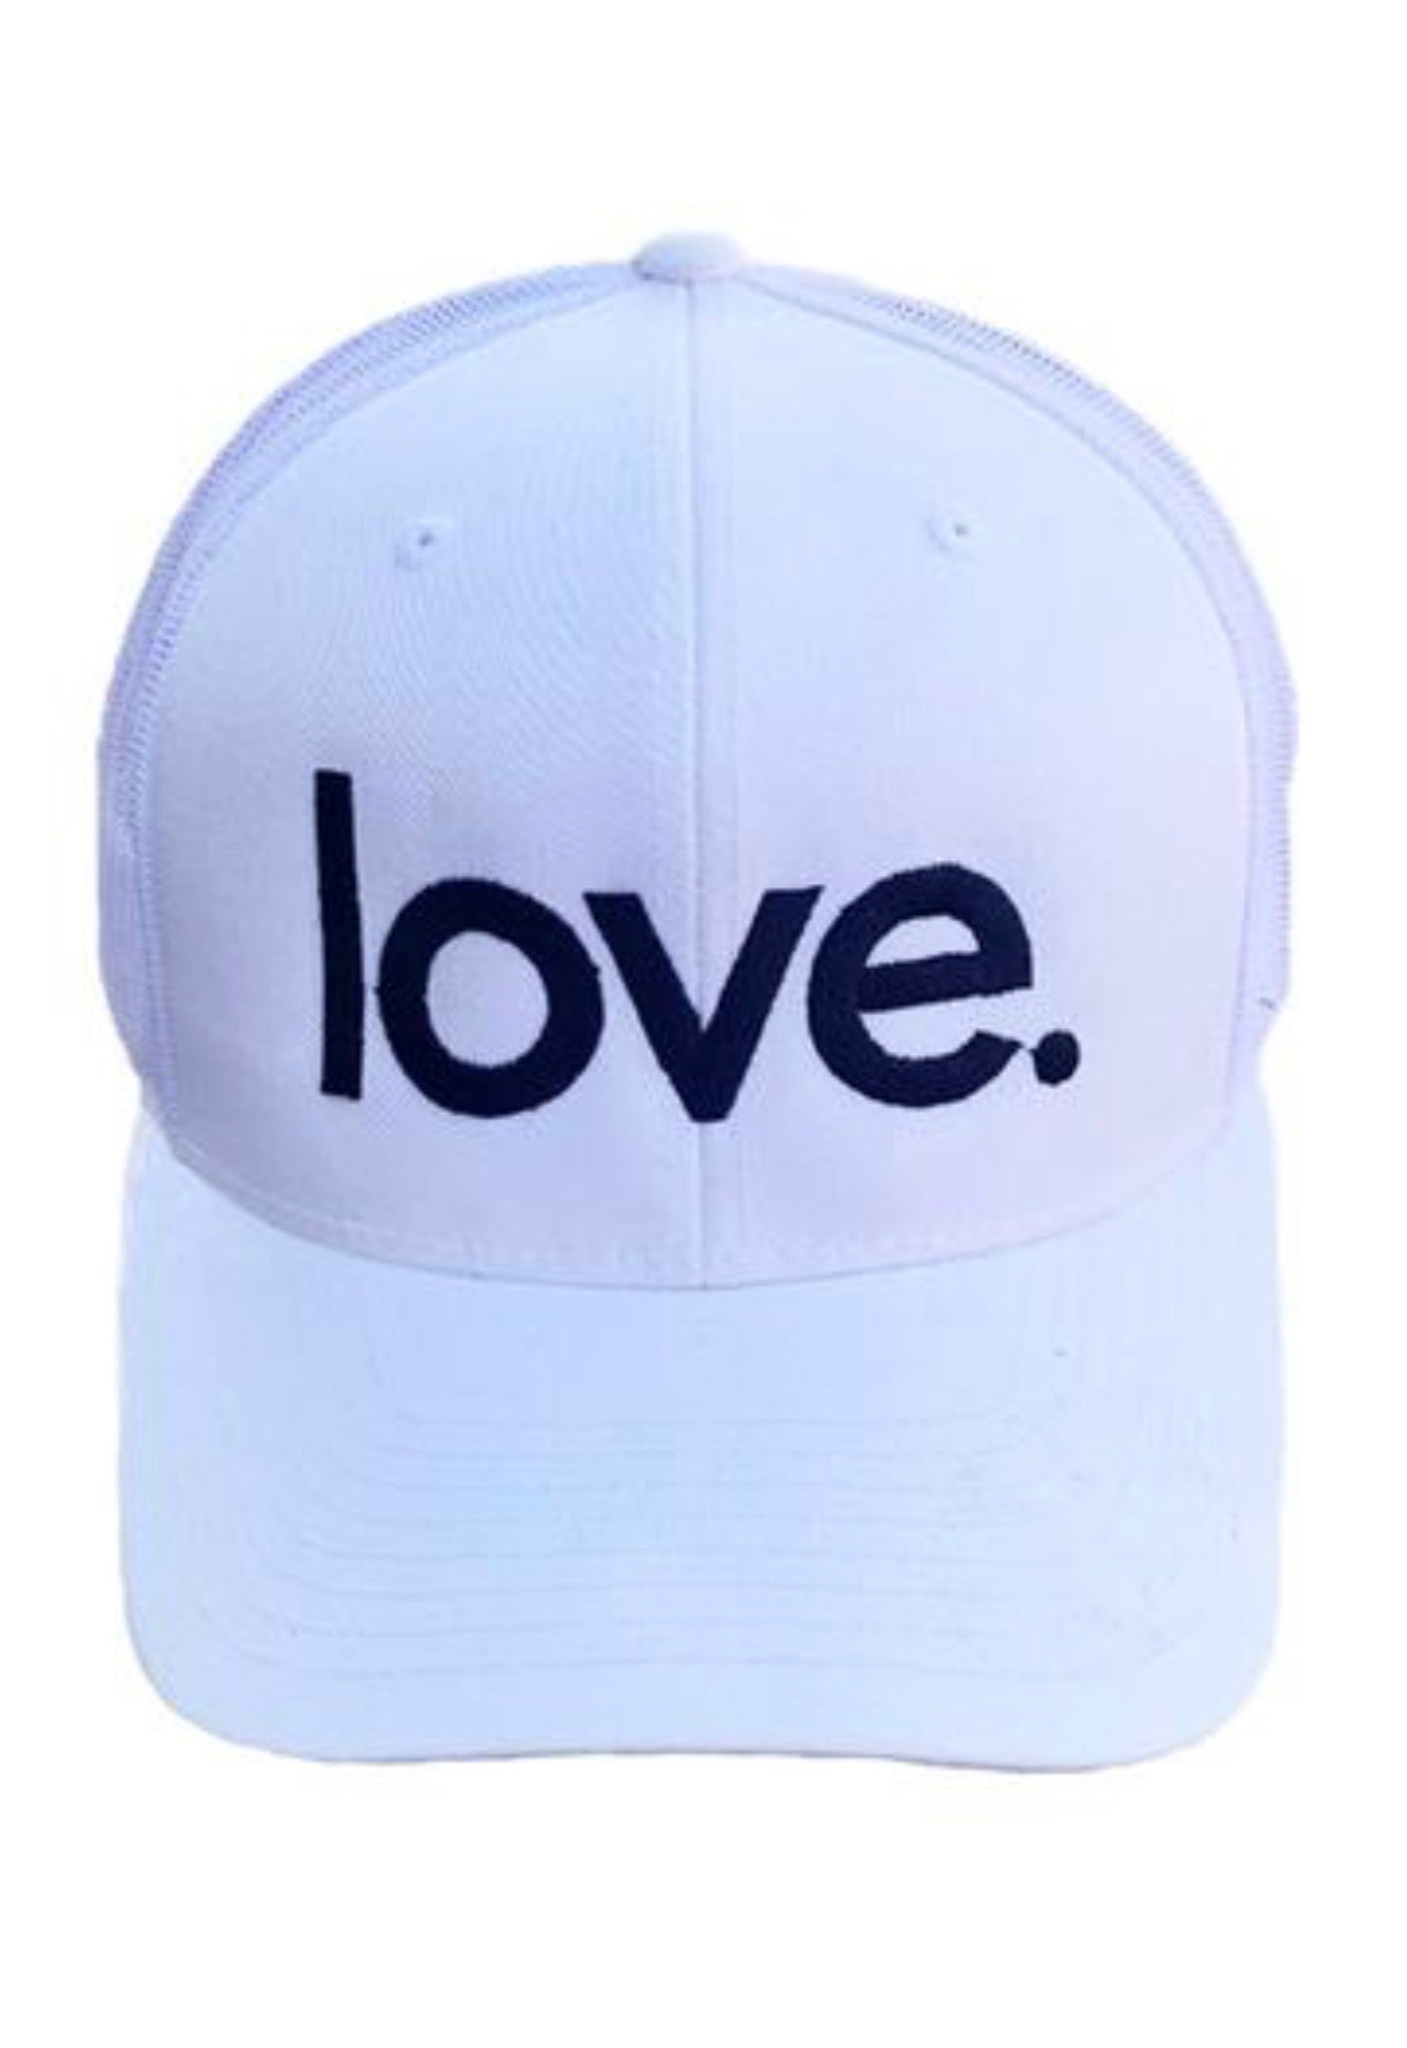 LOVE. EMBROIDERED TRUCKER HAT (White)